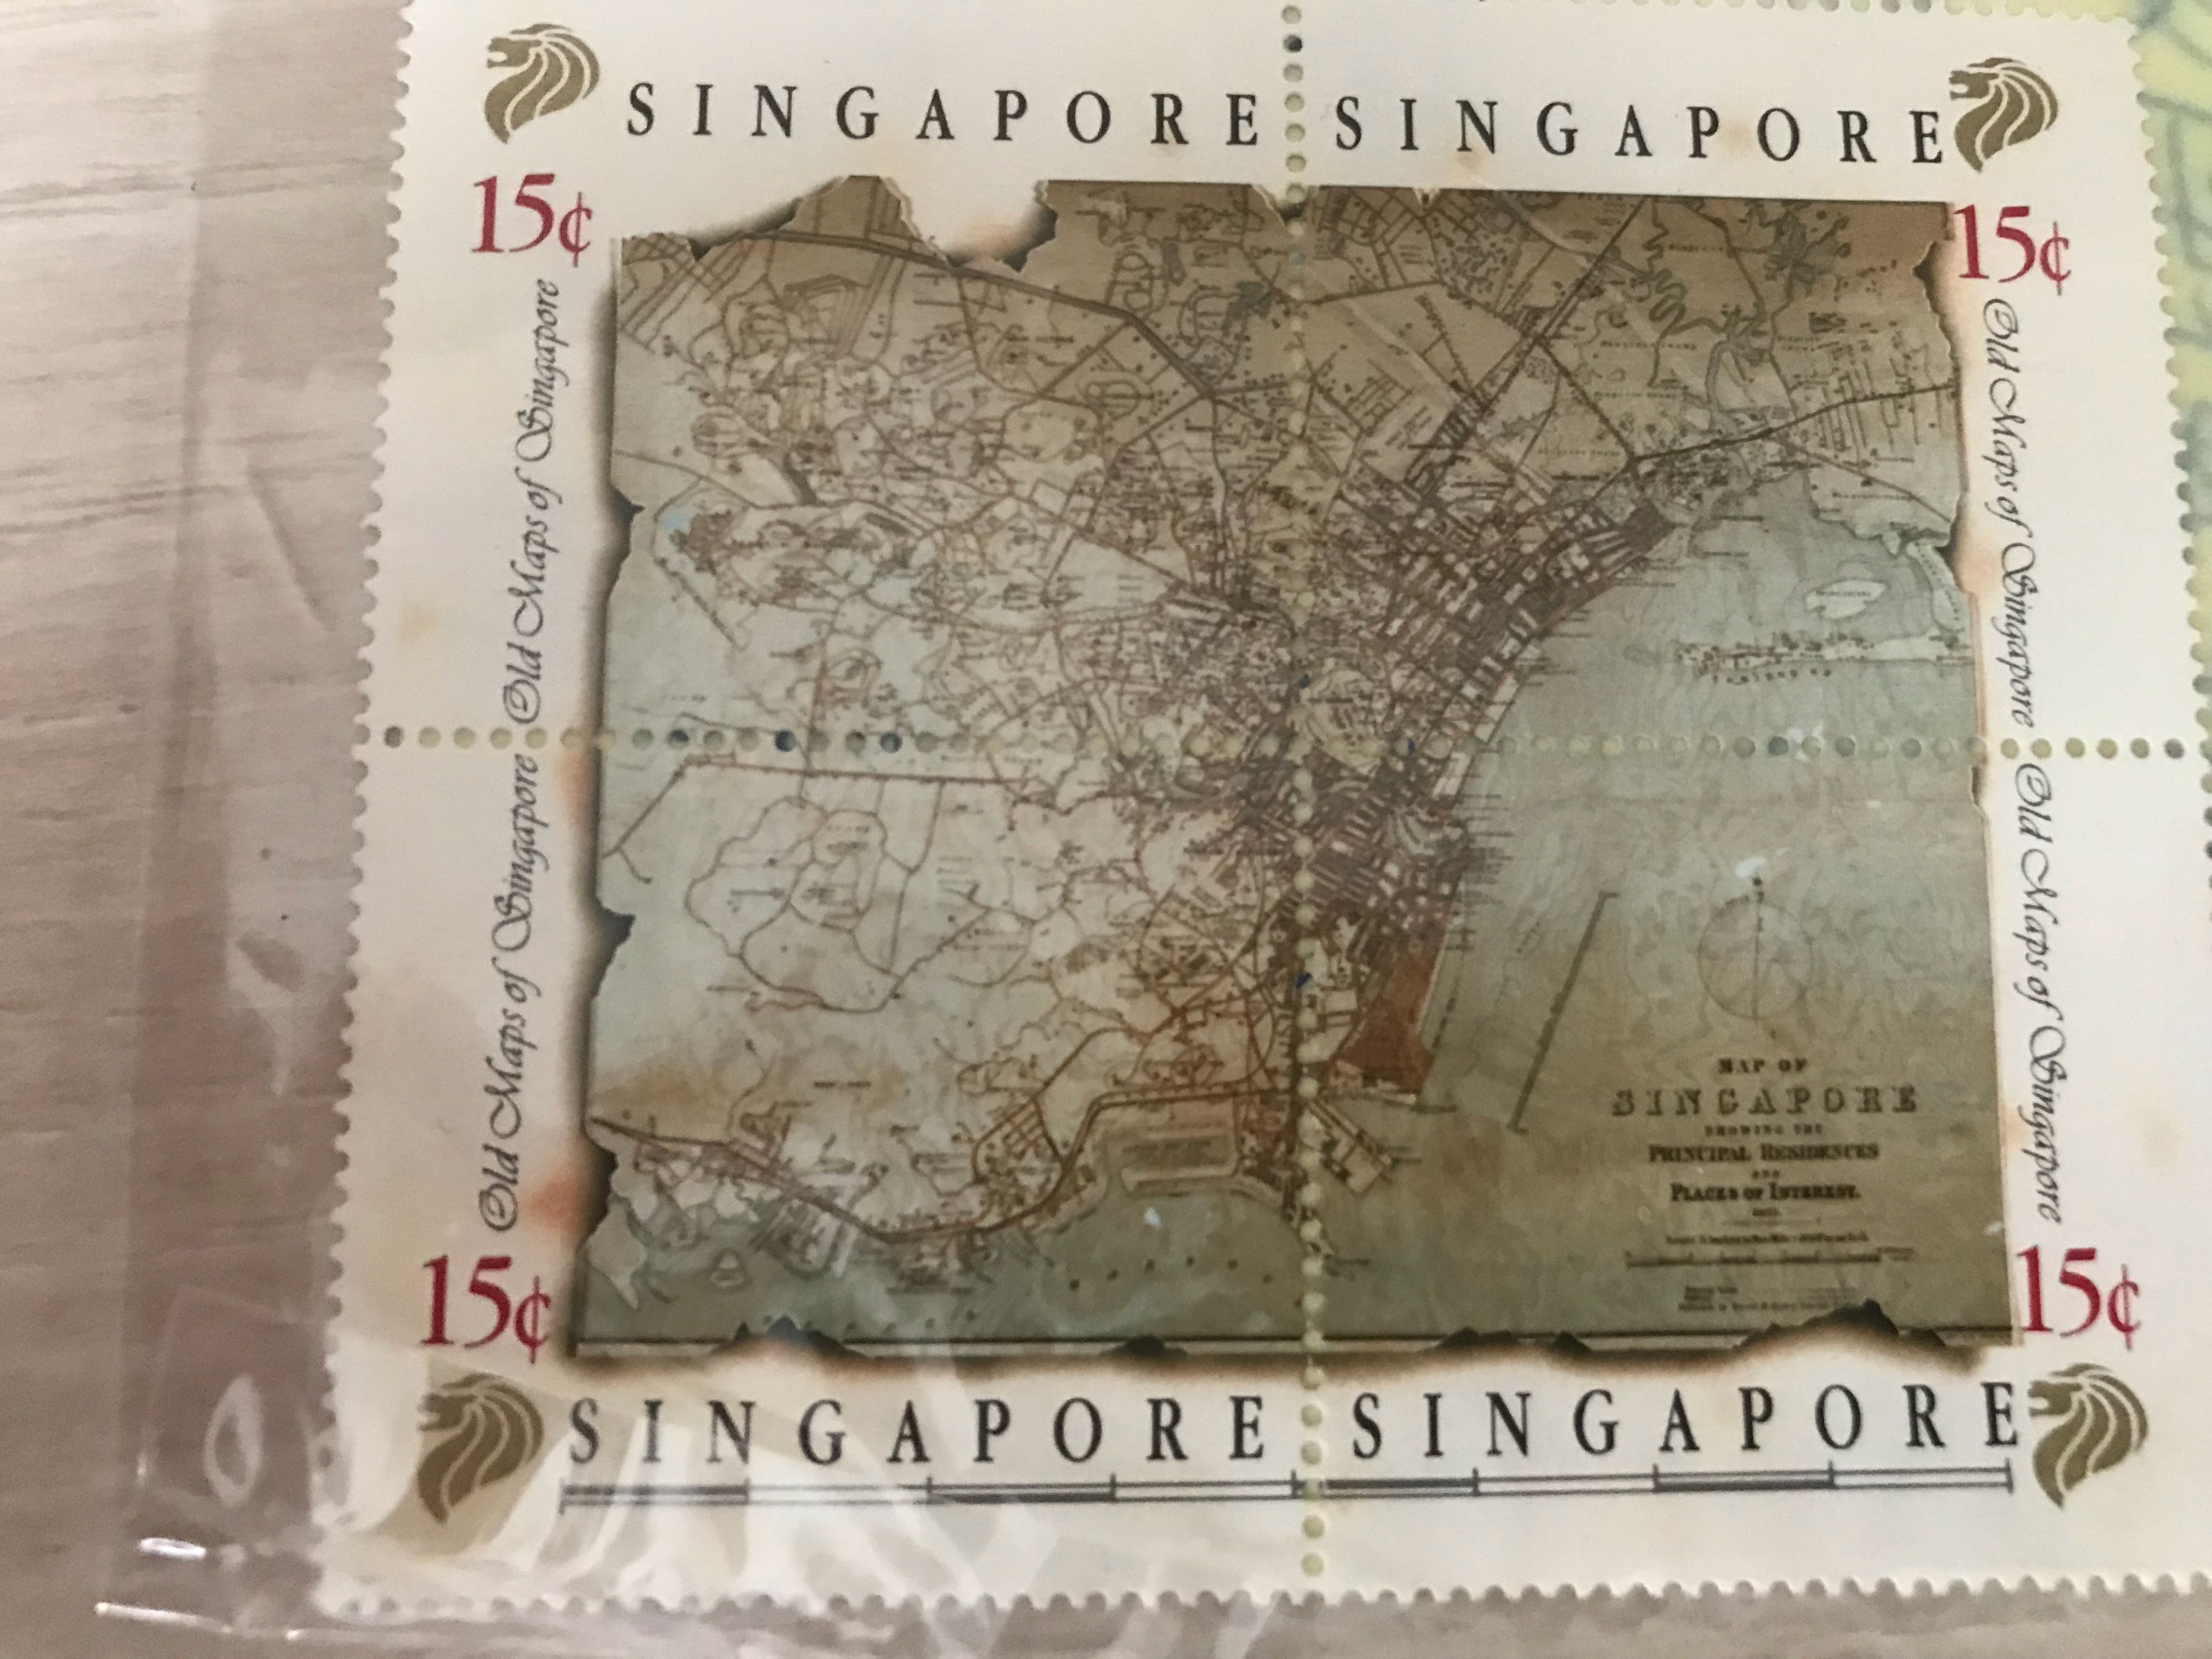 Rare Singapore Old Maps Stamps